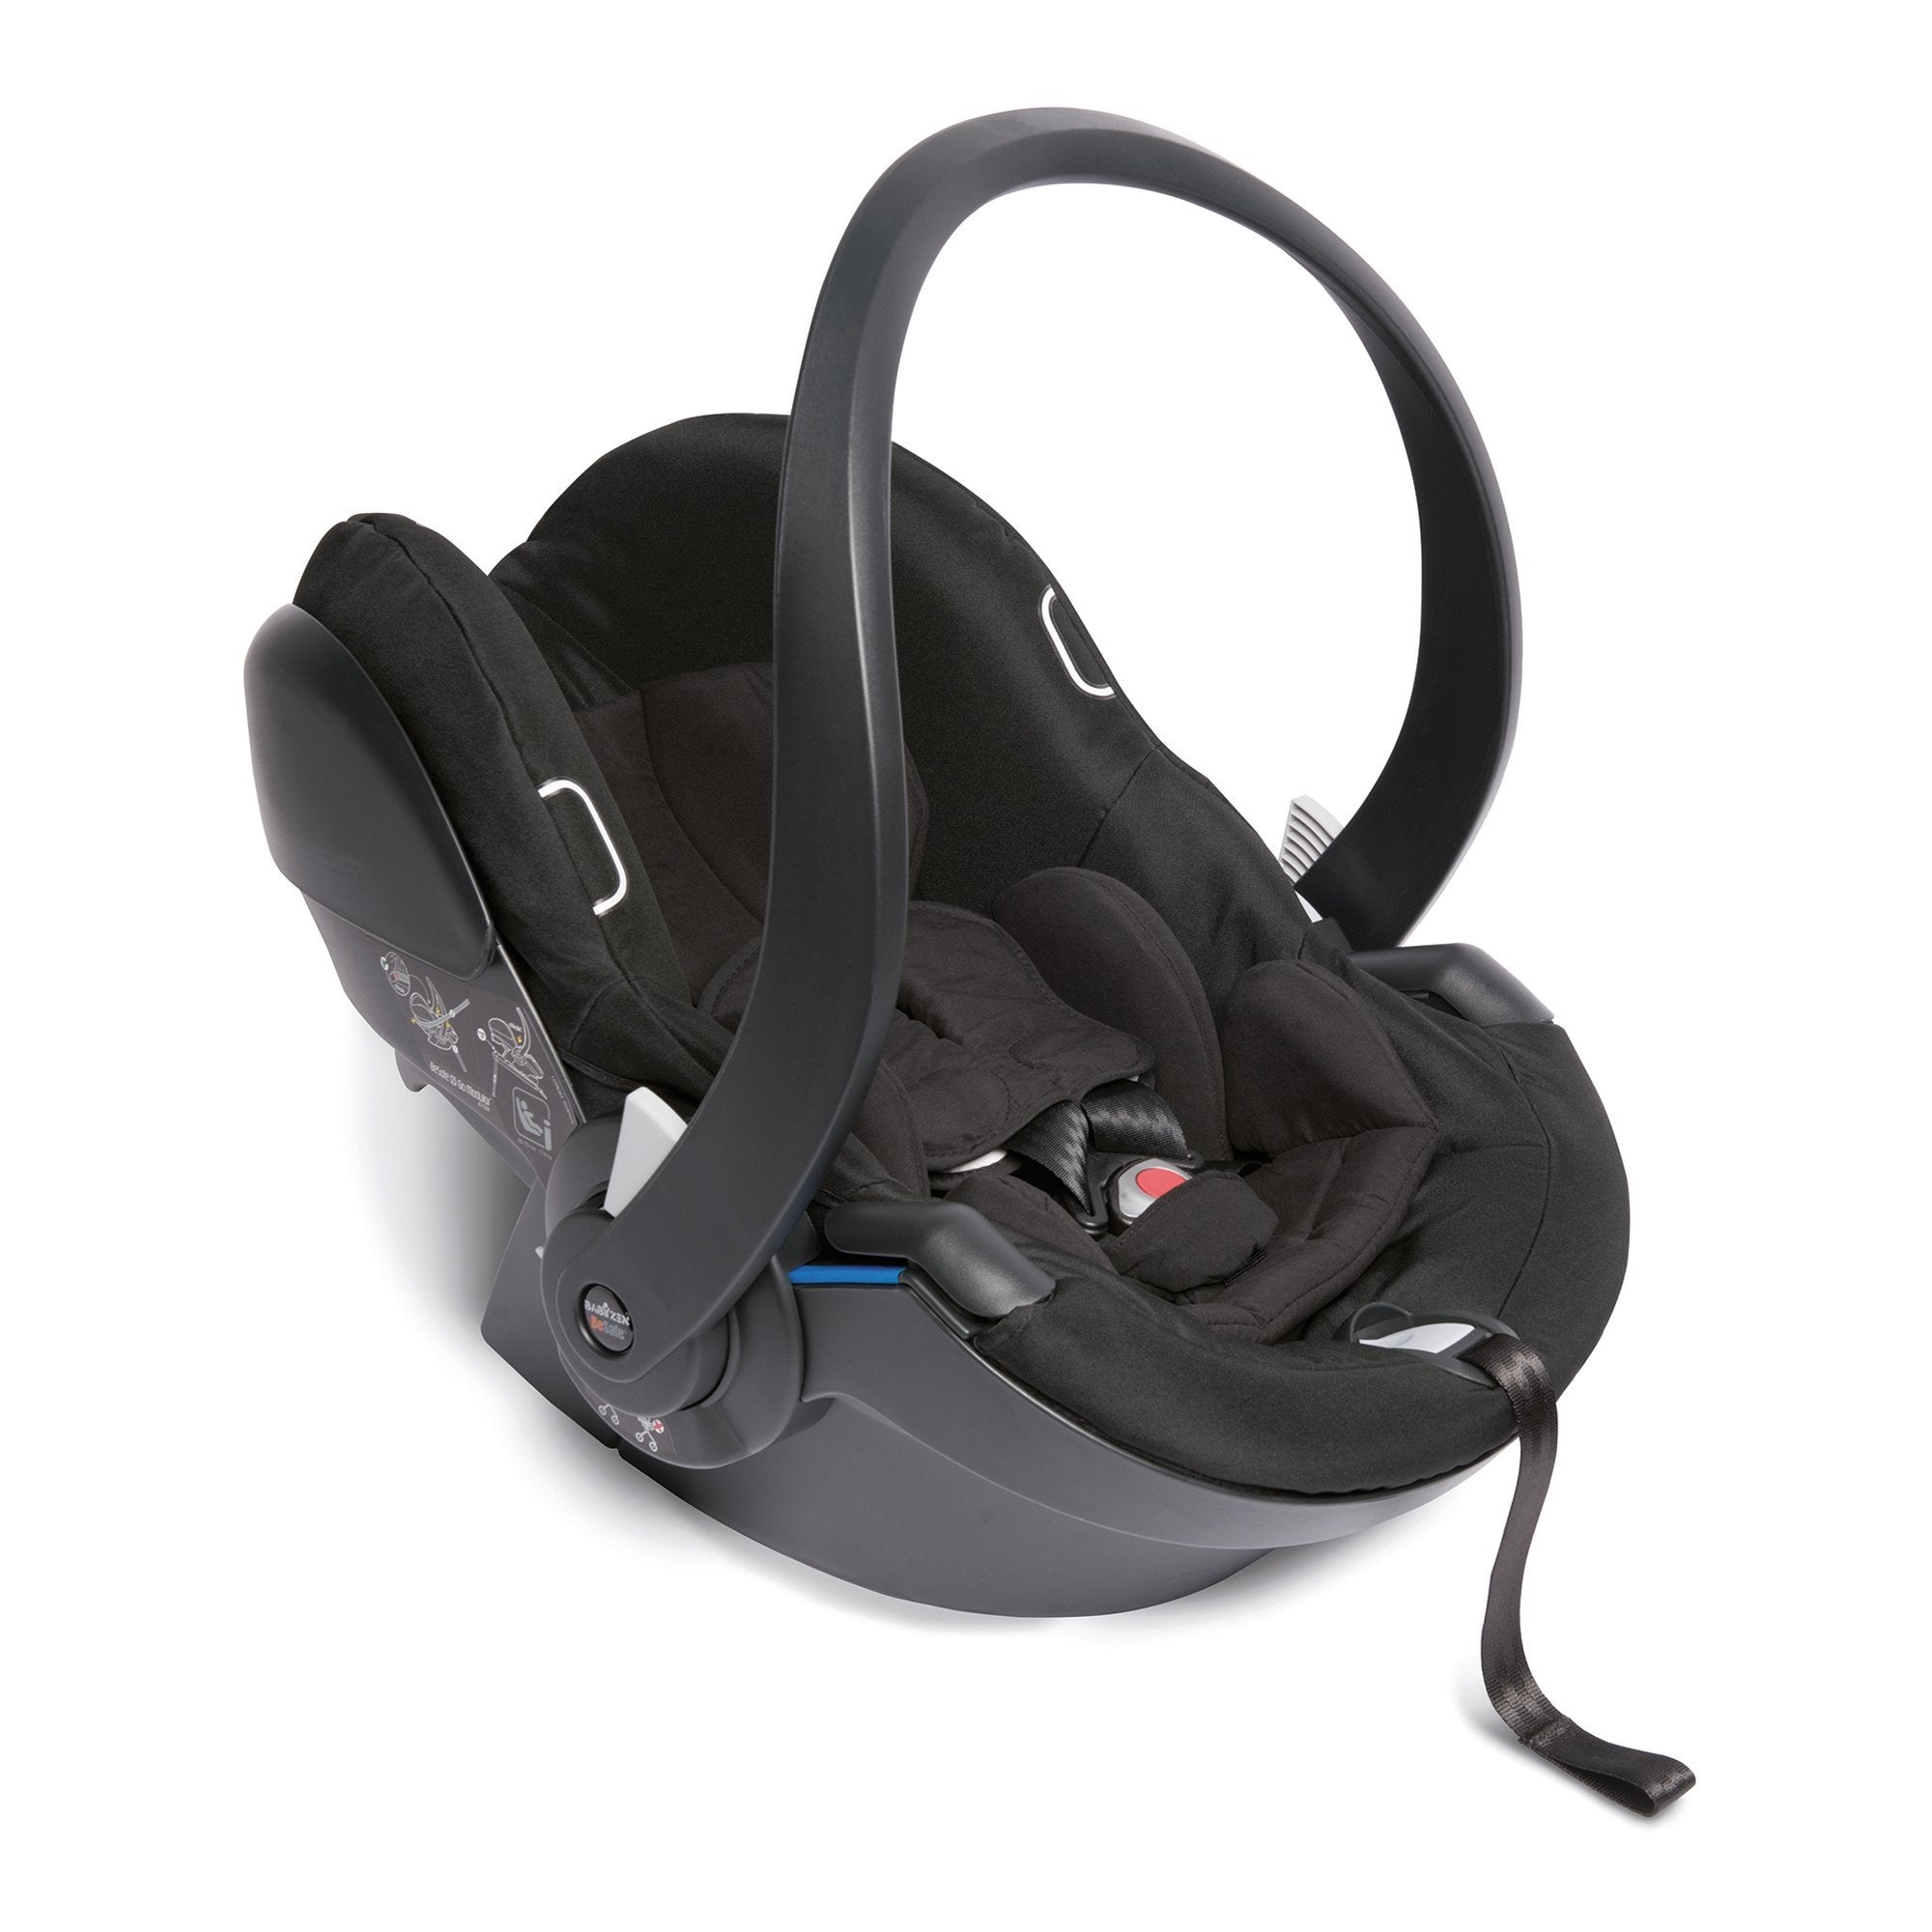 BABYZEN YOYO car seat by BeSafe - Black